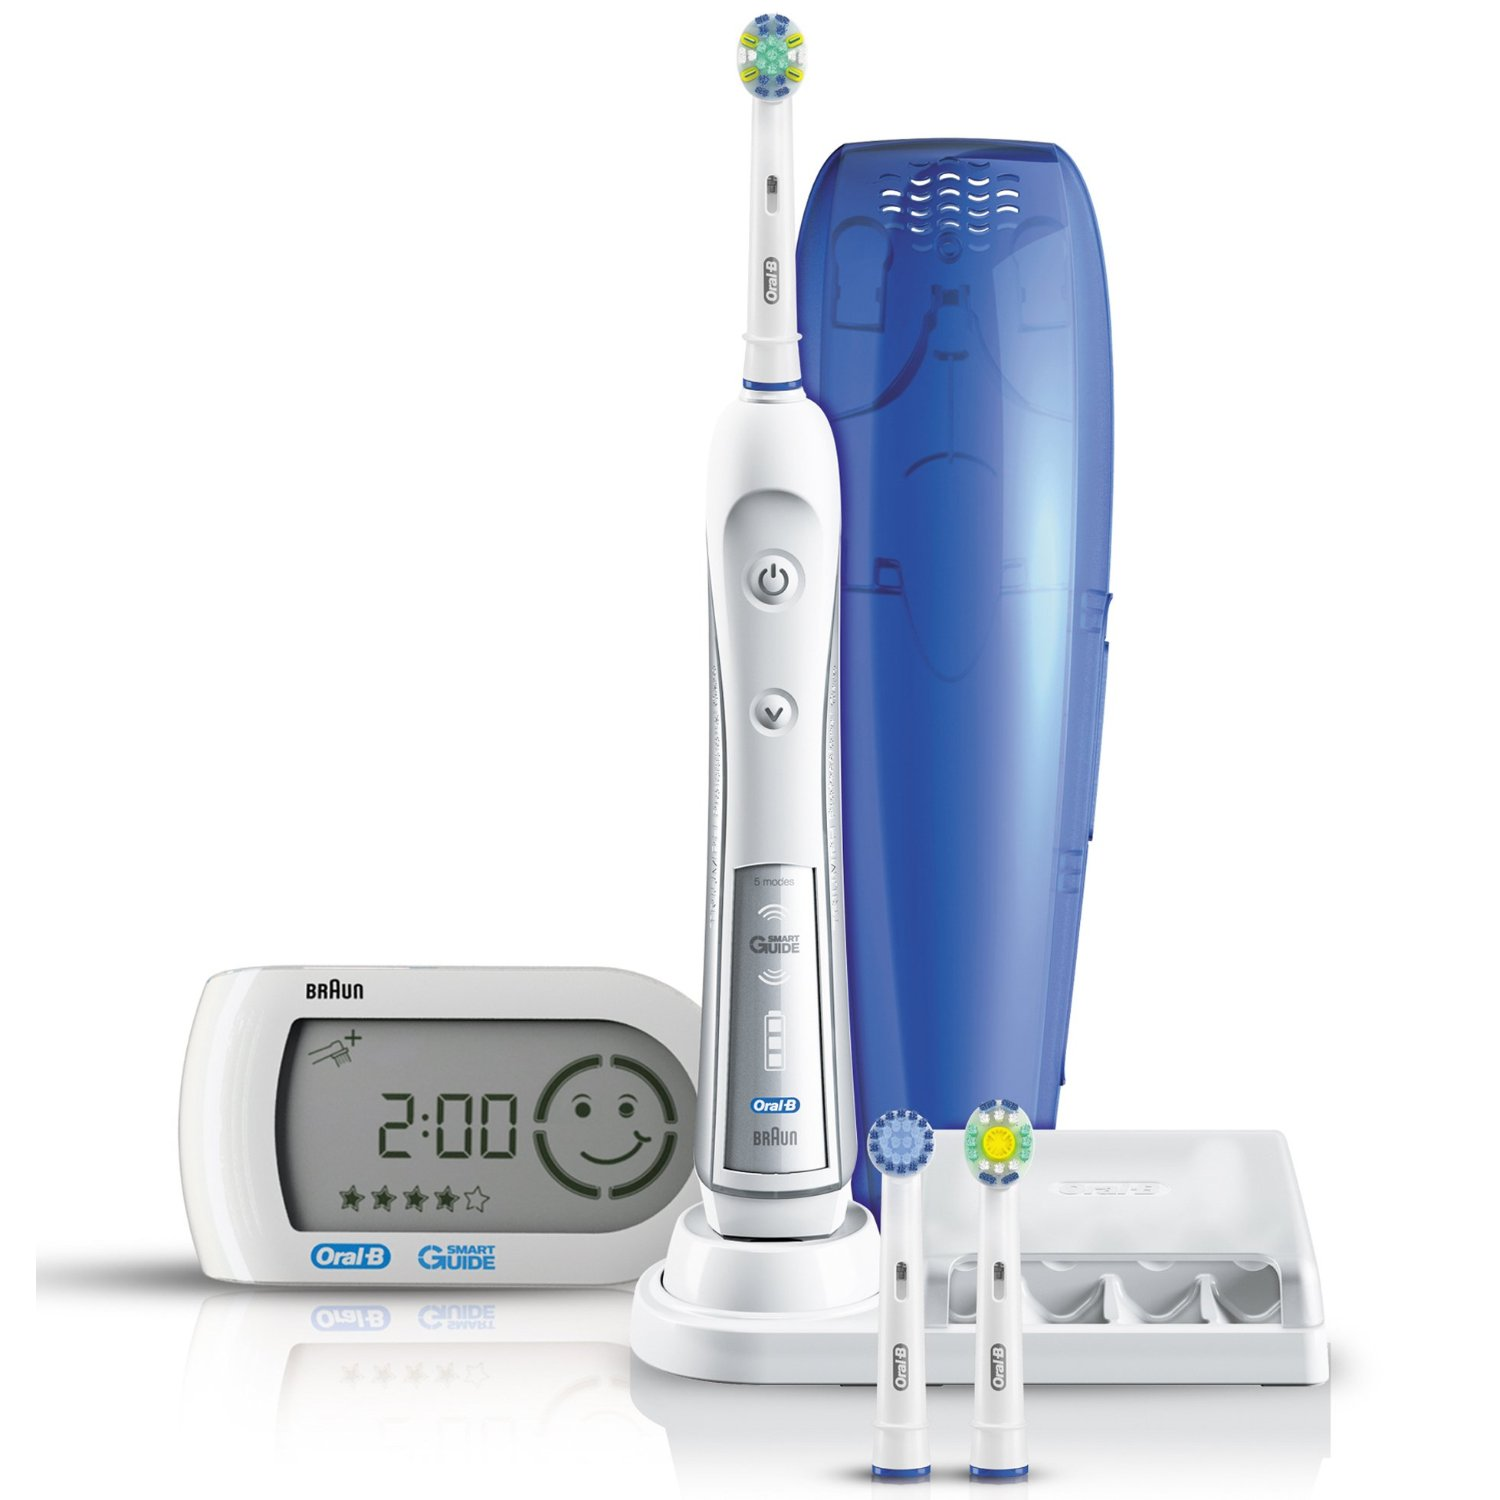 Best Electric Toothbrush for Receding Gums 2